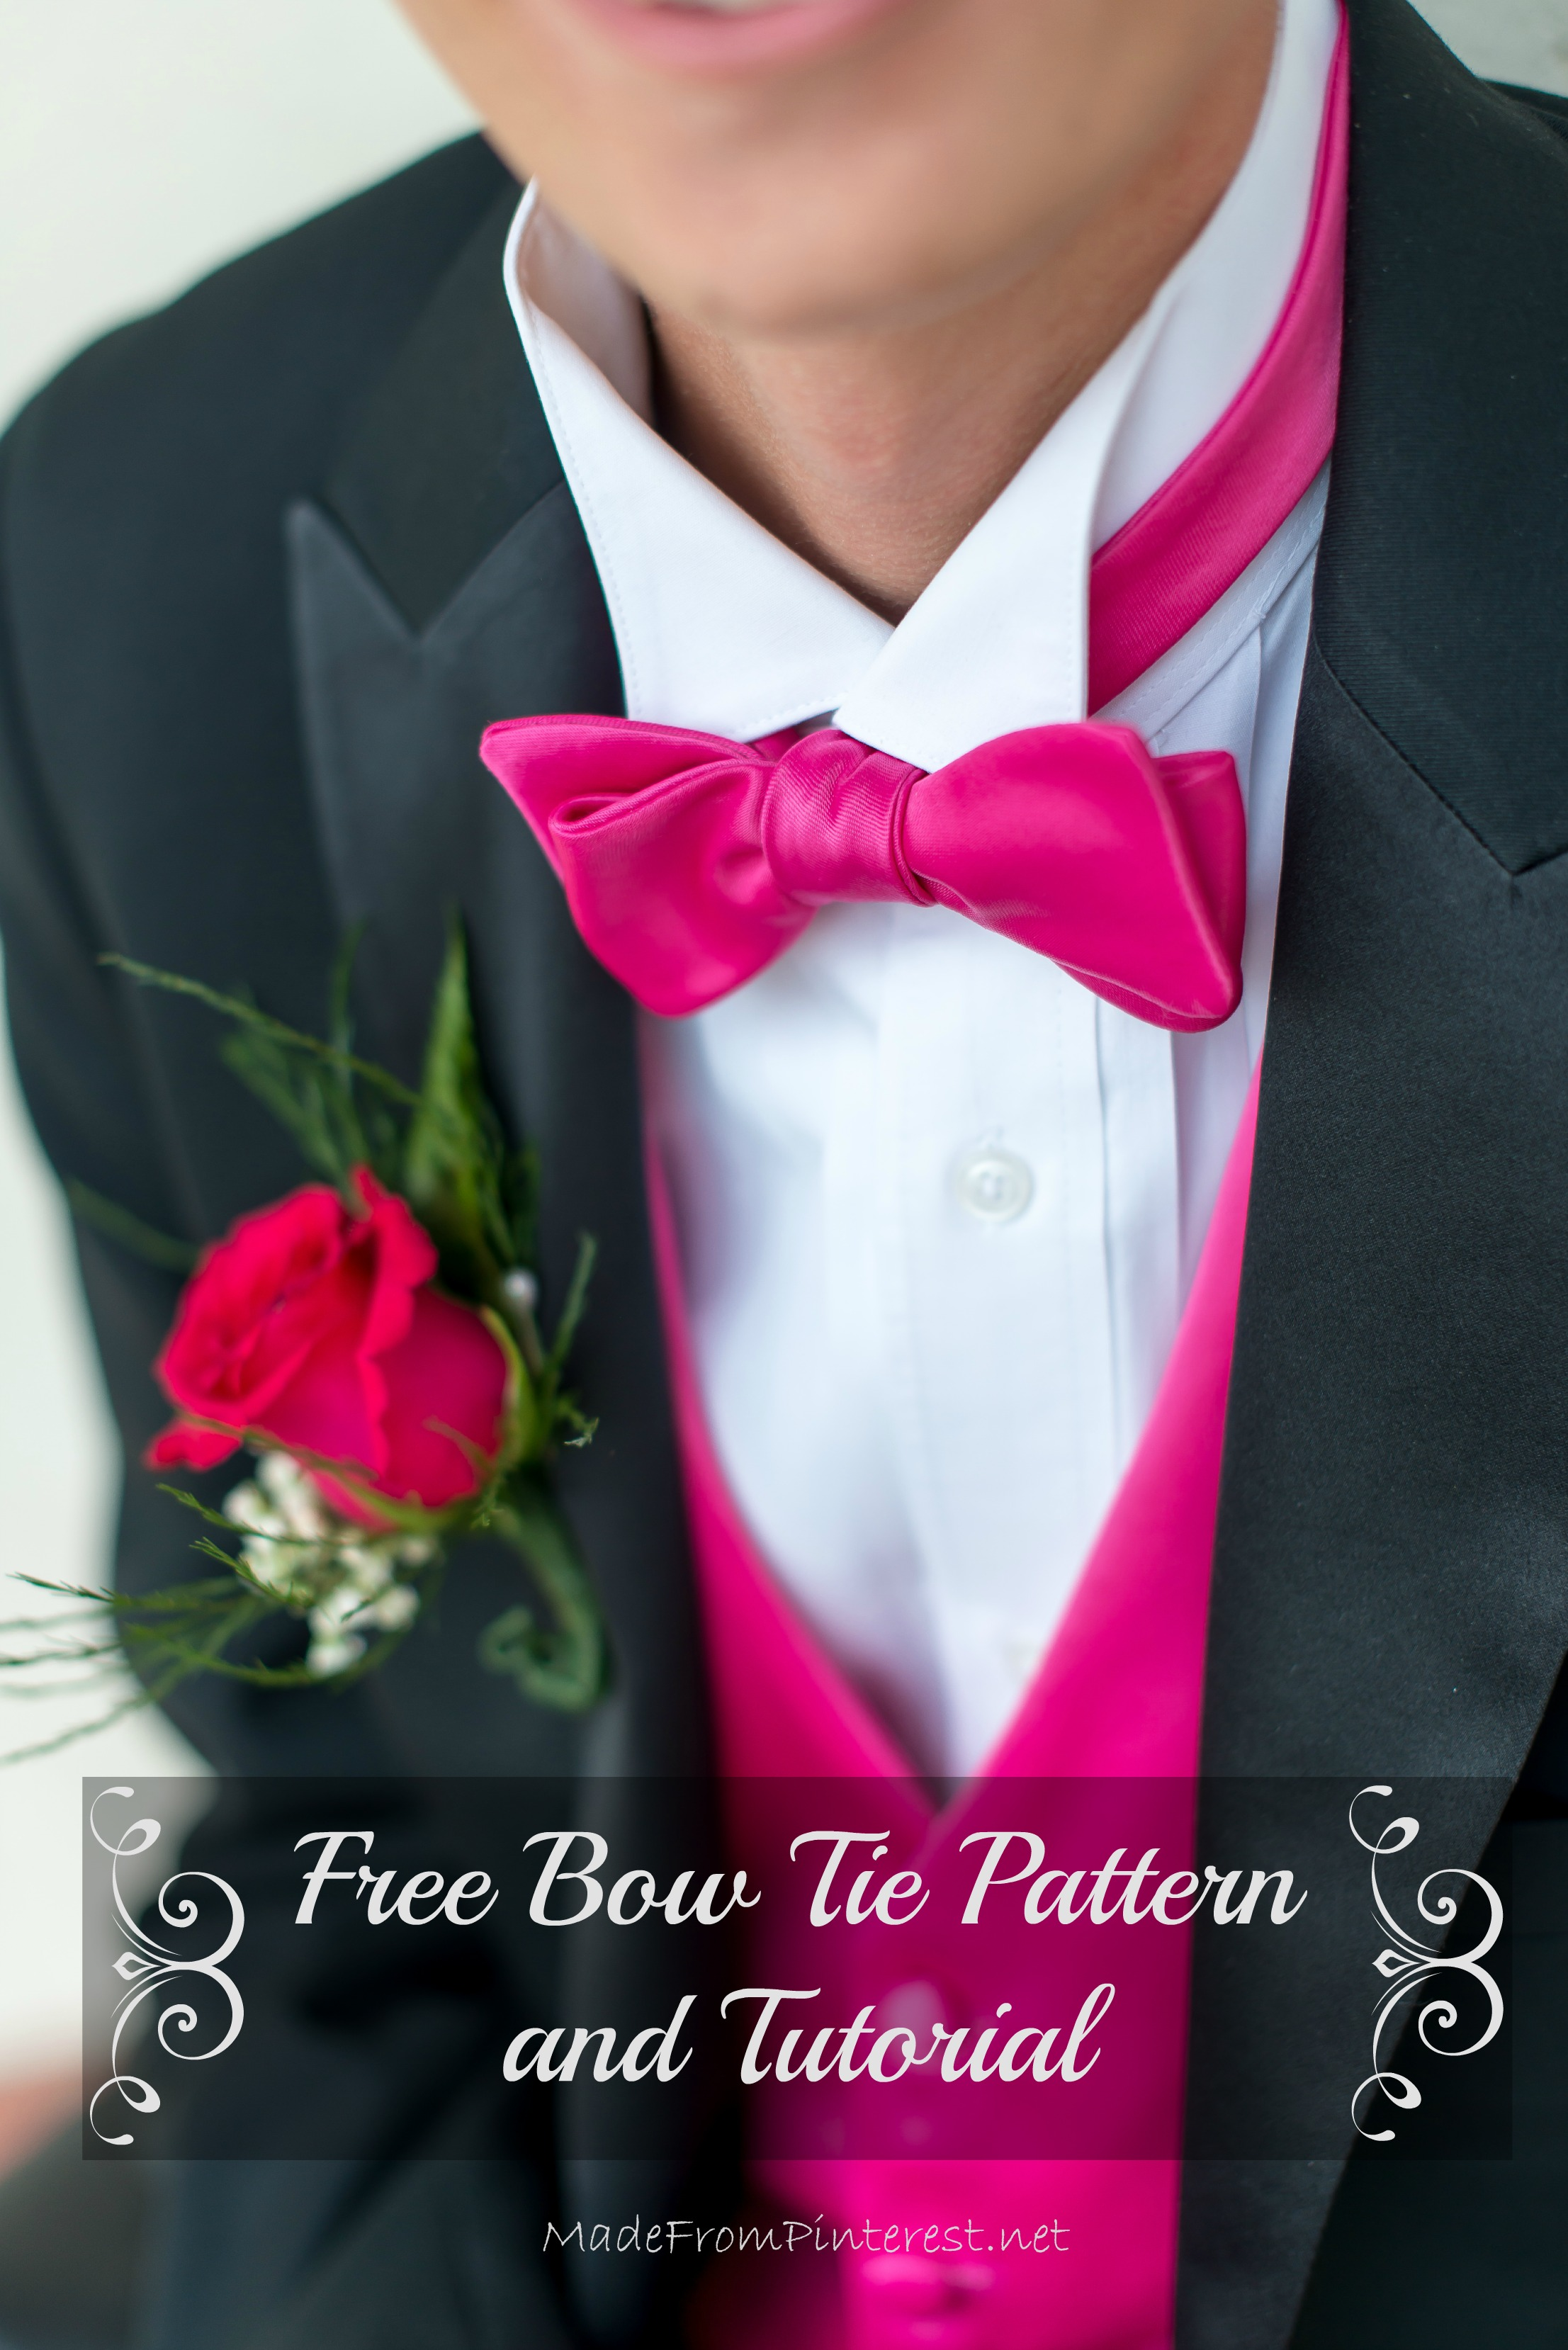 Easy Tie Dye Tips And Step By Step Instructions: A Bow Tie Pattern With A Touch Of Class